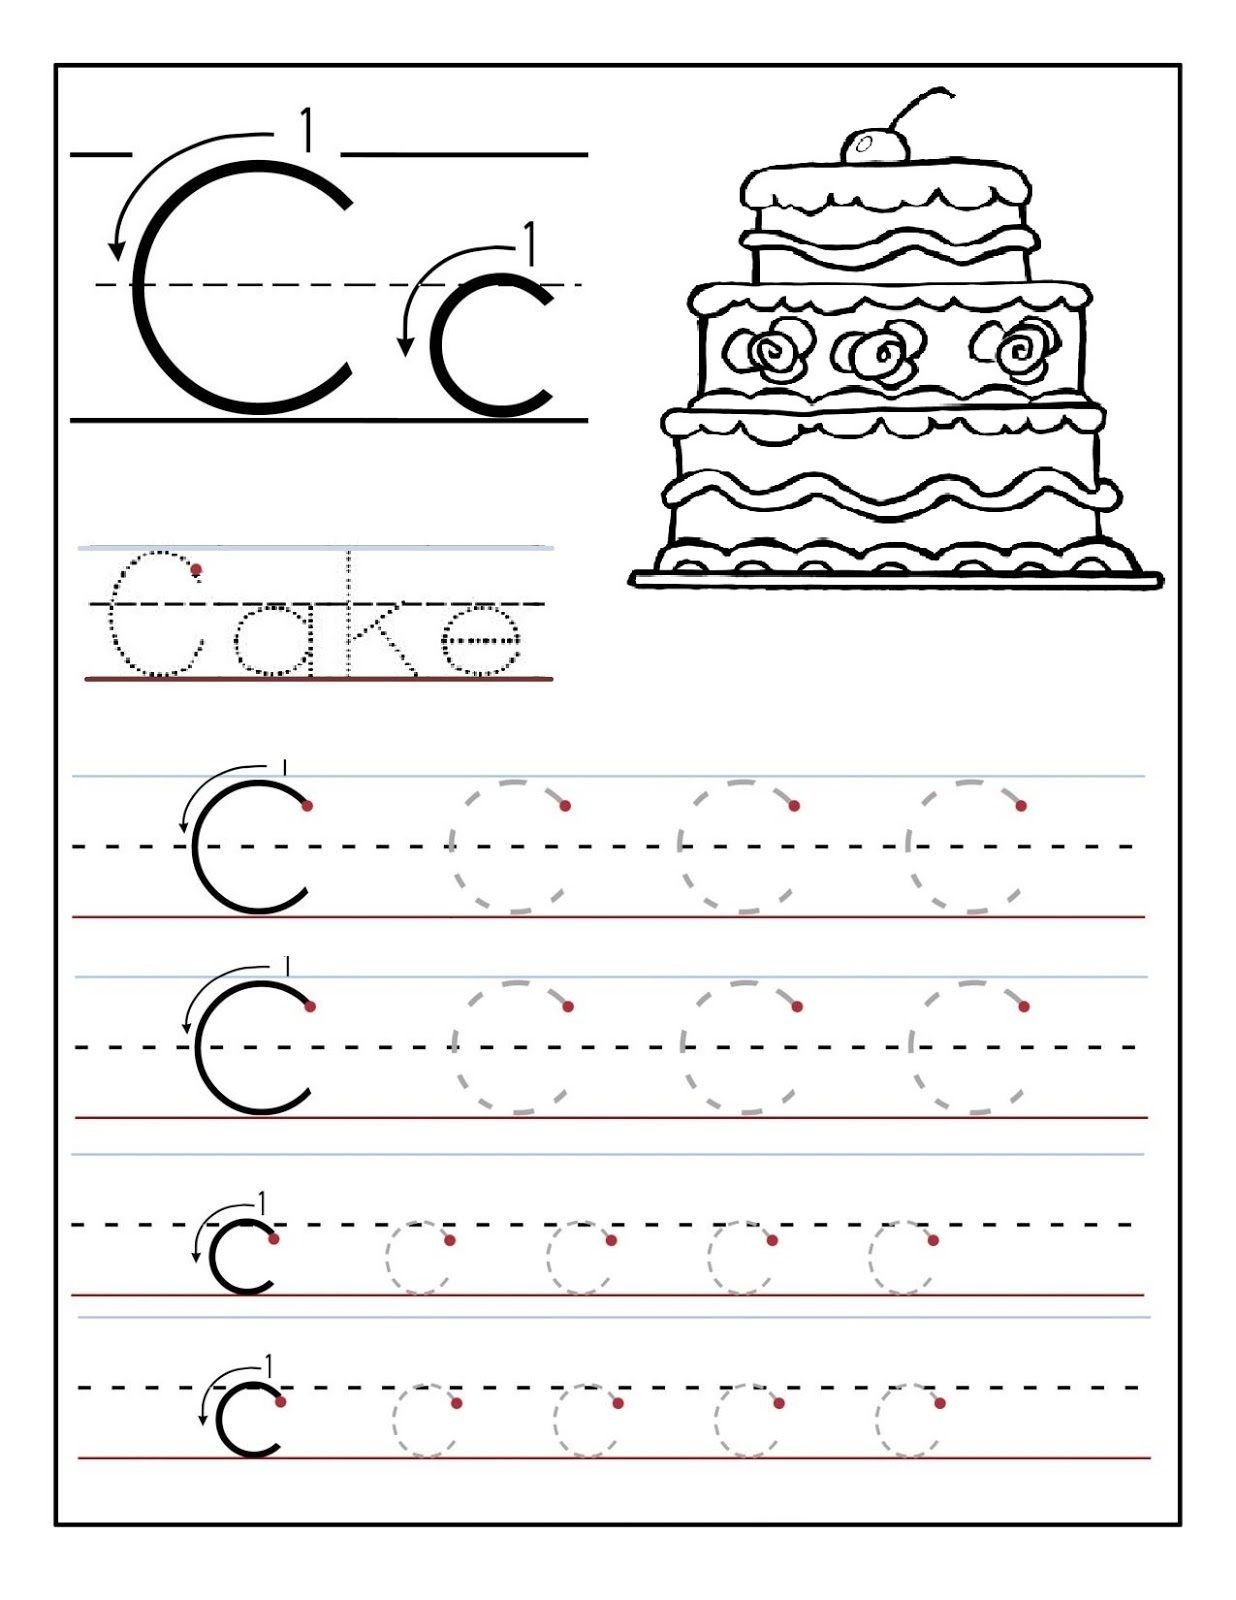 Kids Learning Sheets Printable | K5 Worksheets | Preschool ...